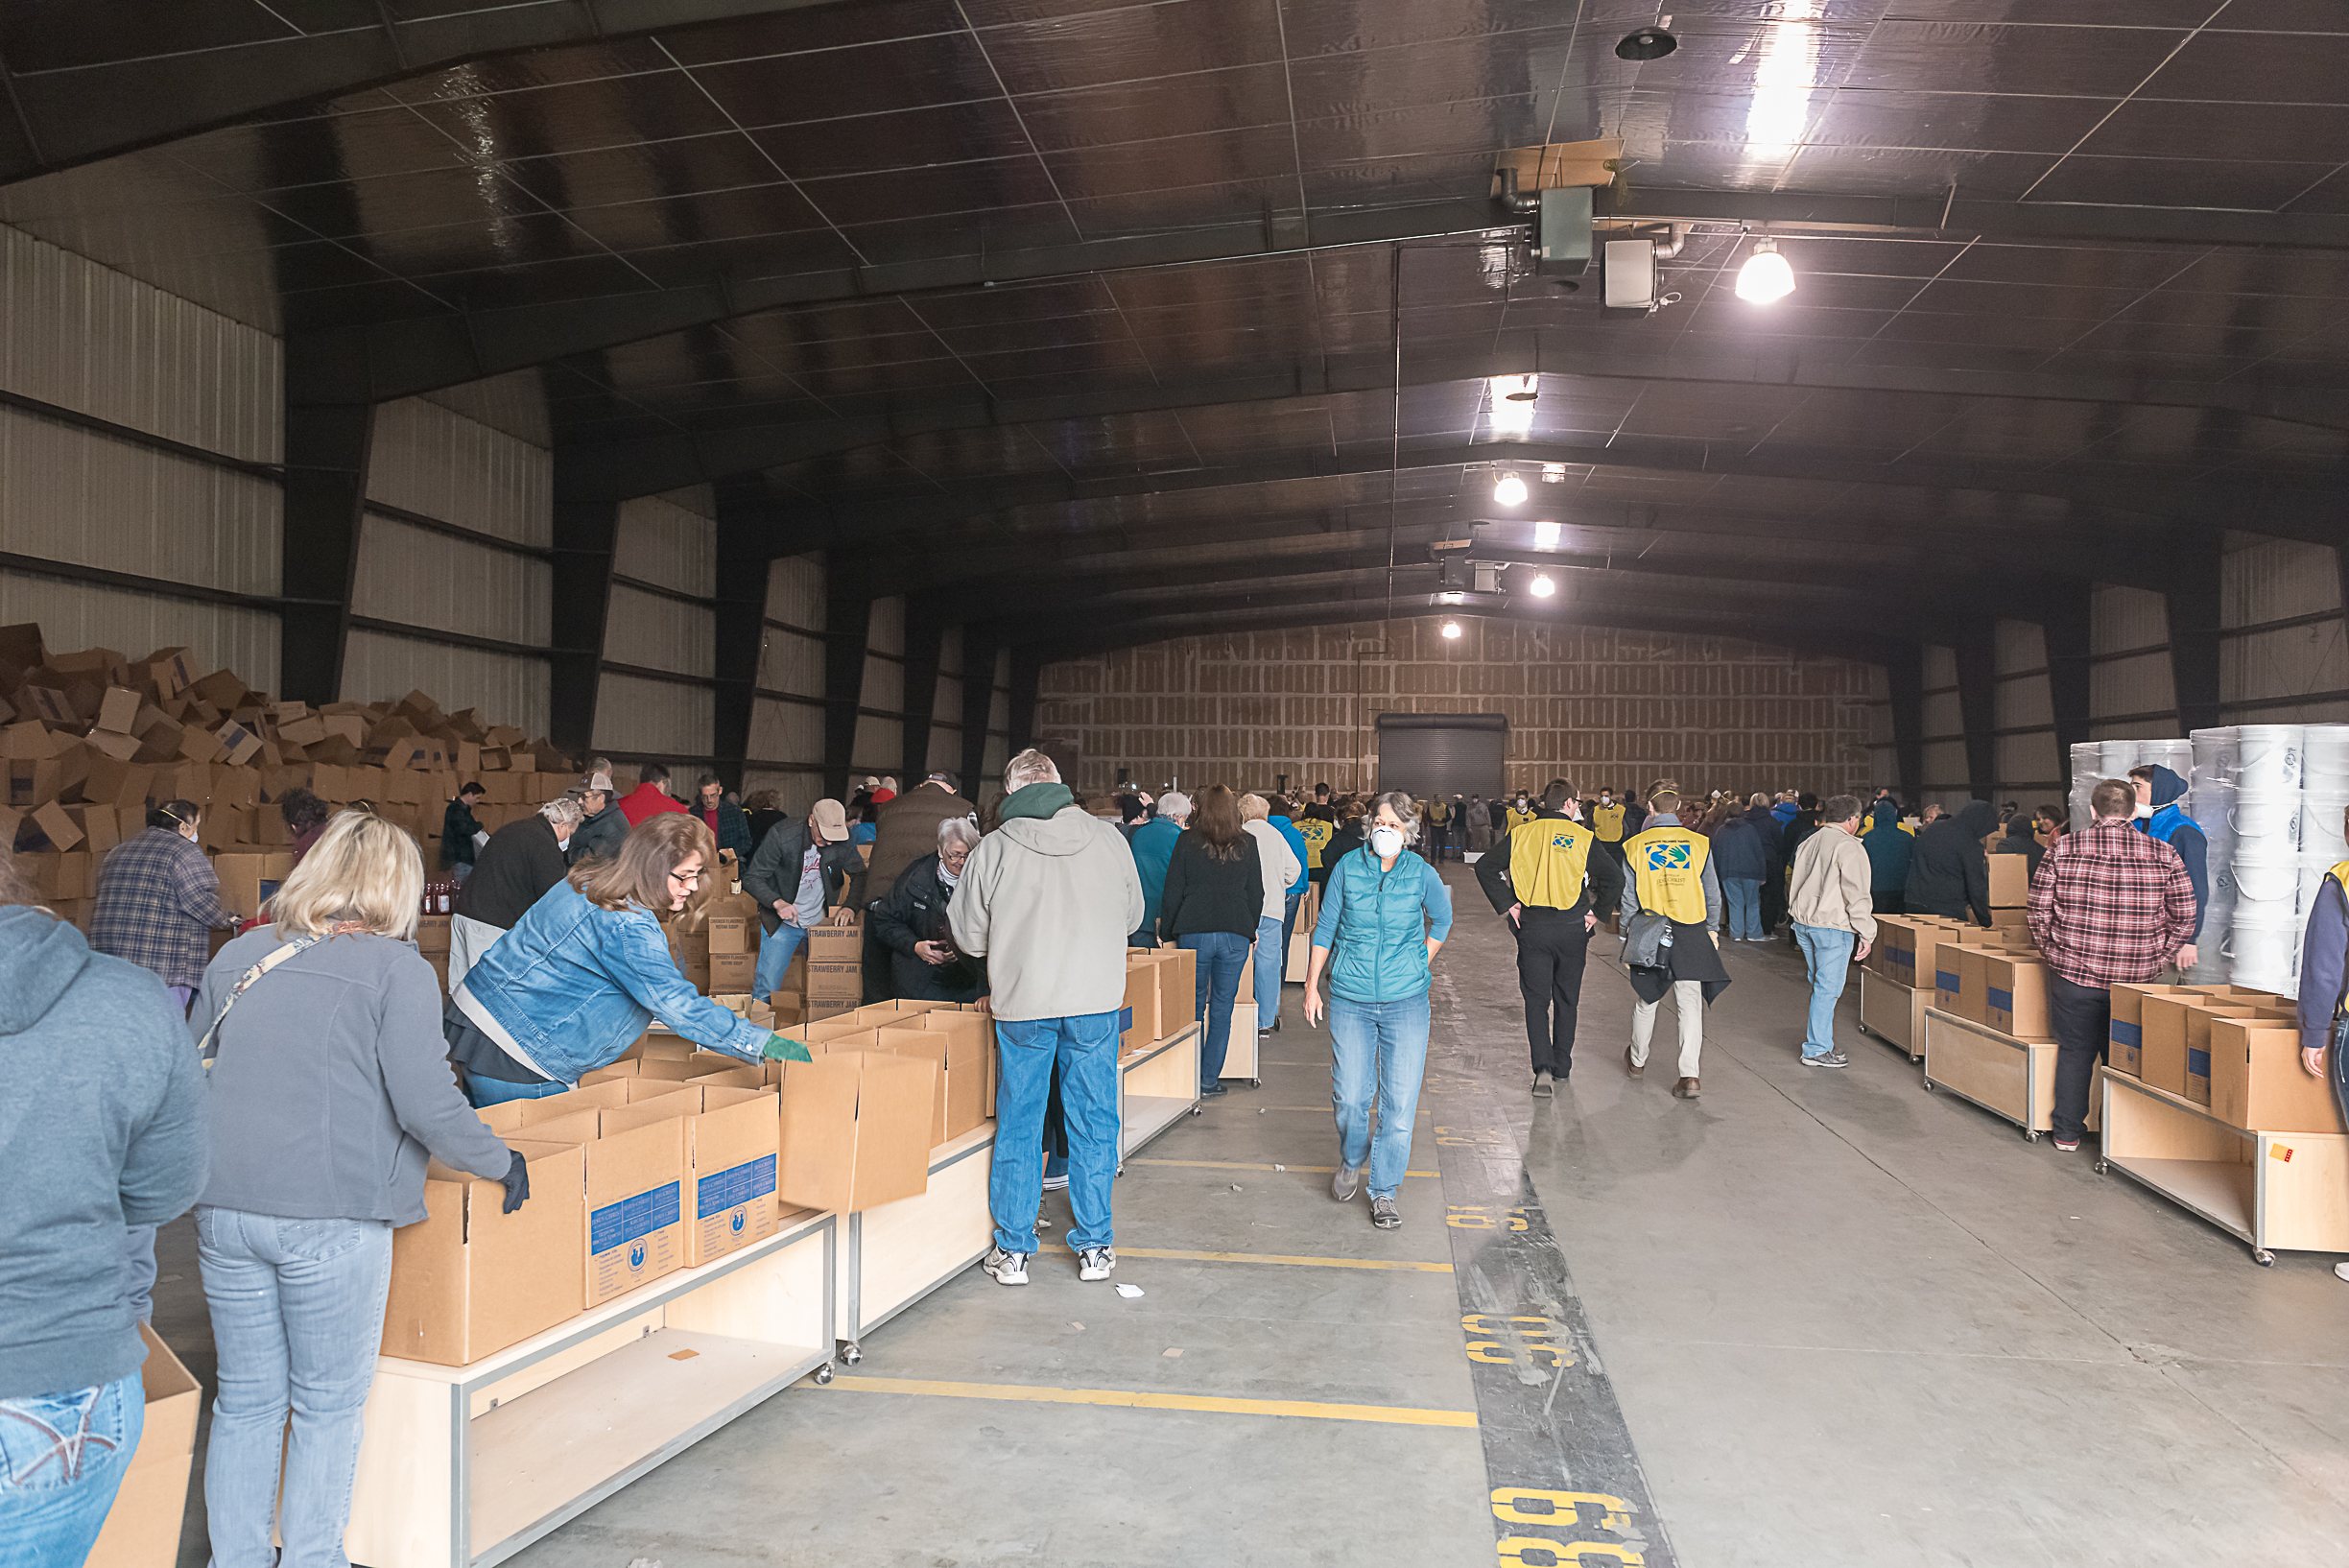 Several hundred Latter-day Saints and community members gather at a warehouse in Oroville, California, on Nov. 17, 2018, to package and distribute food and supplies to those impacted by a deadly wildfire that heavily damaged Paradise, California.